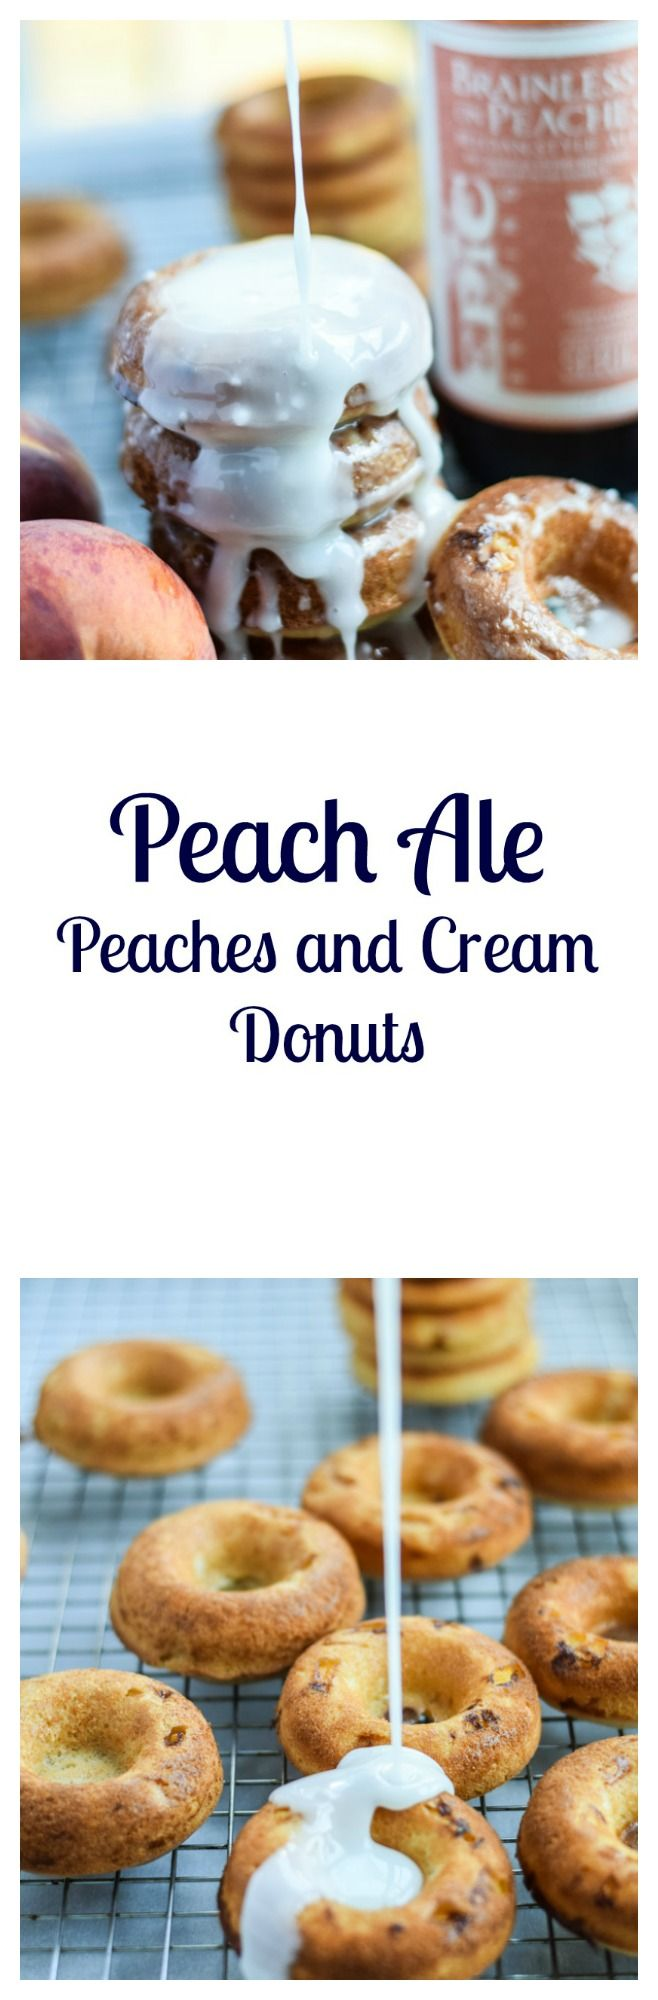 Peach Ale Peaches and Cream Donuts